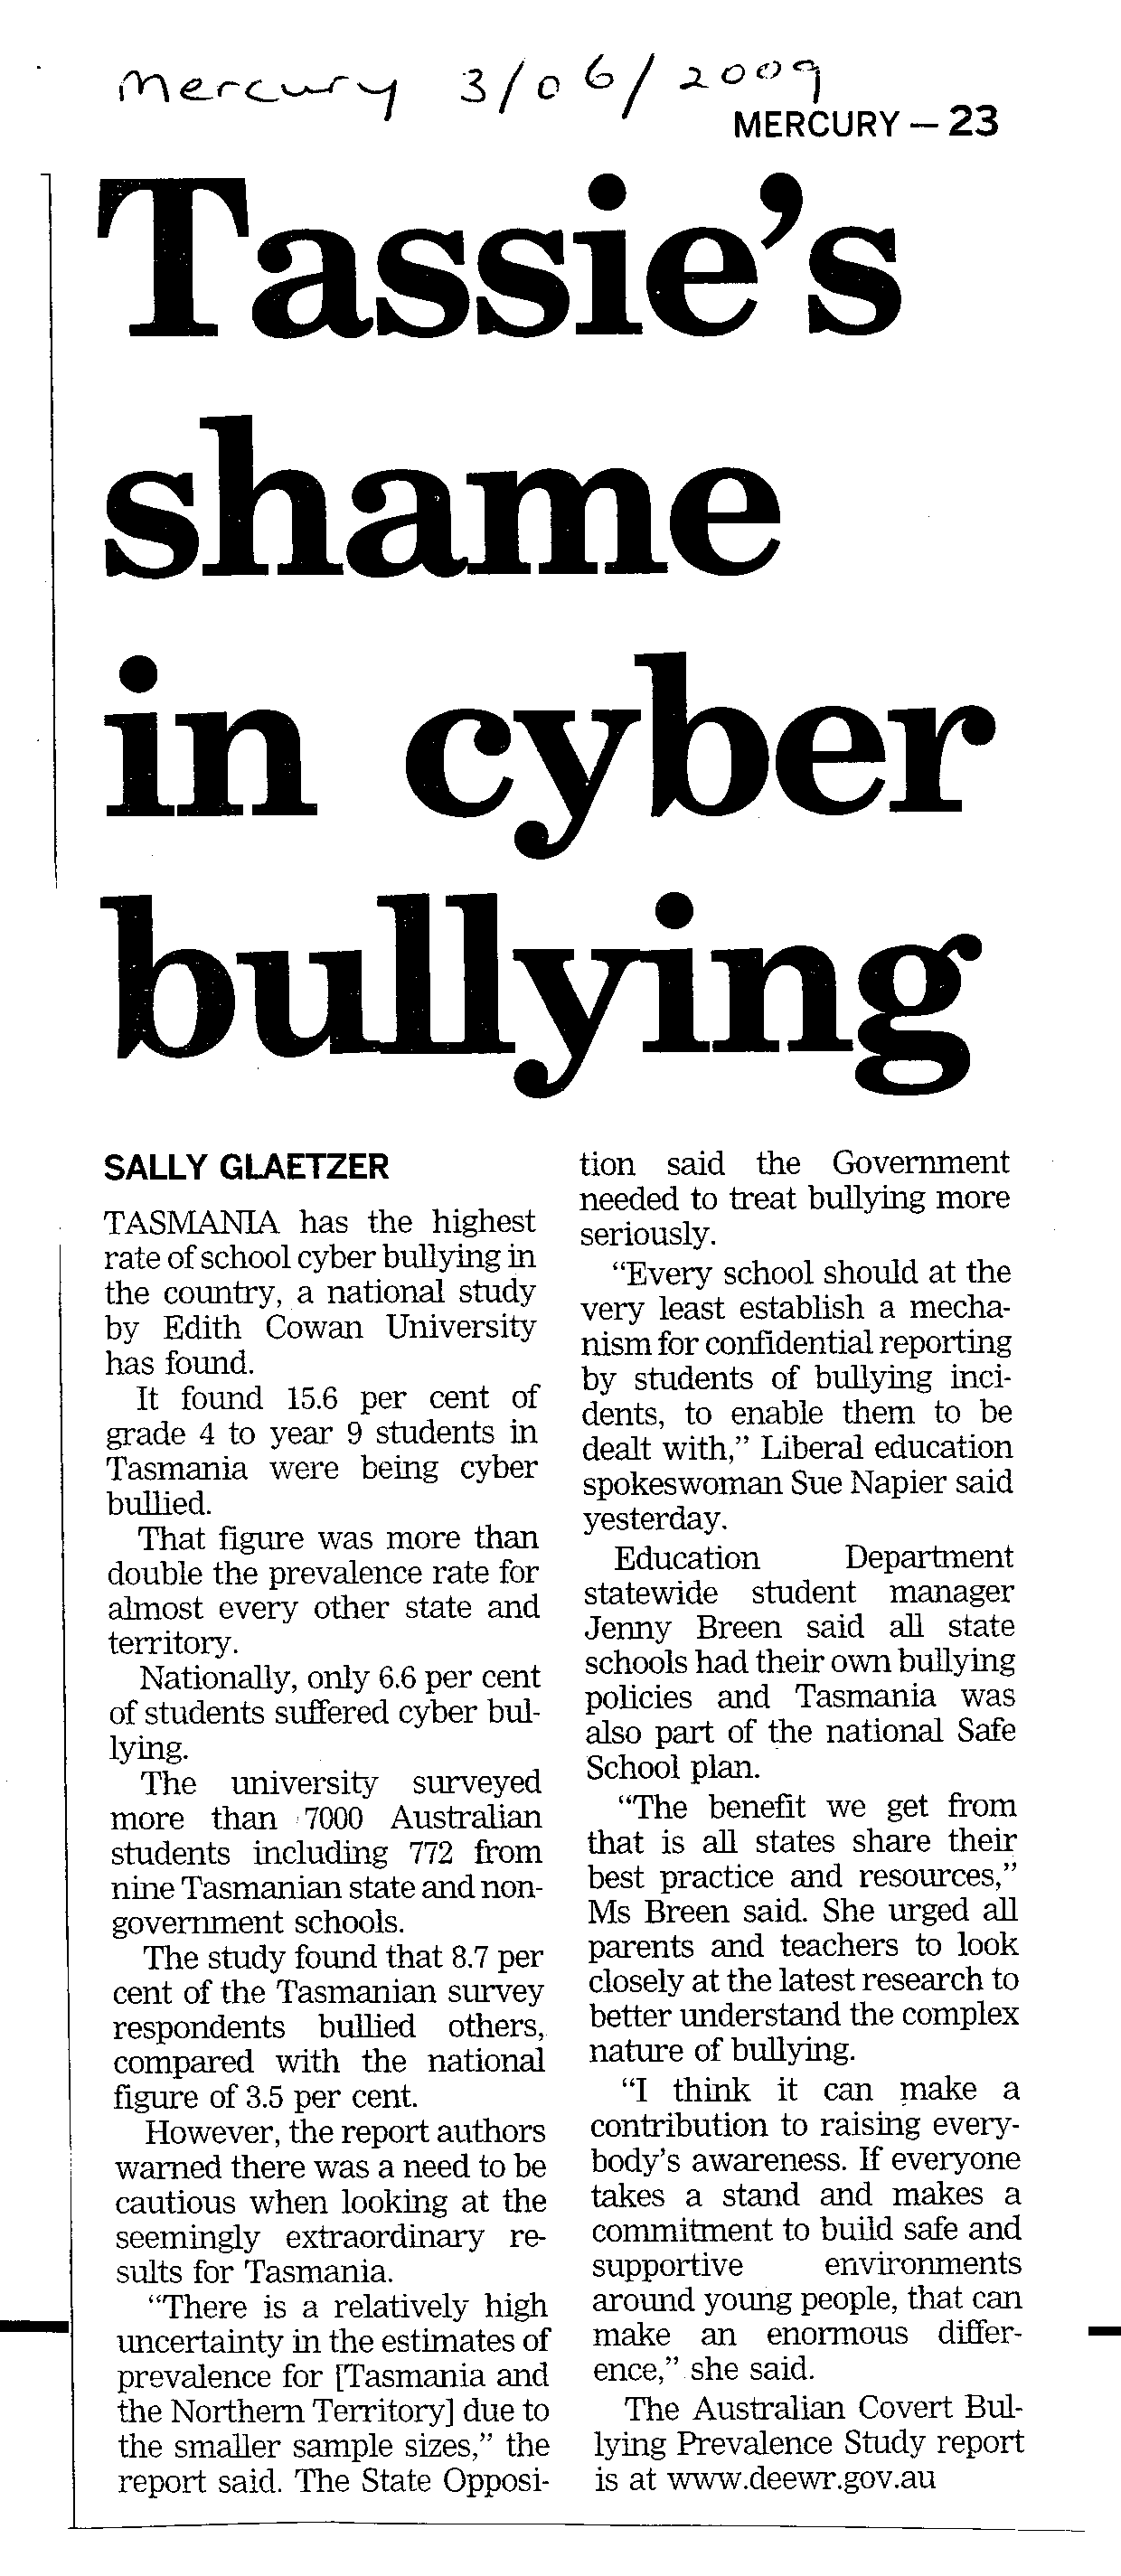 Worksheets Cyber Bullying Worksheets cyber bullying teaching activity